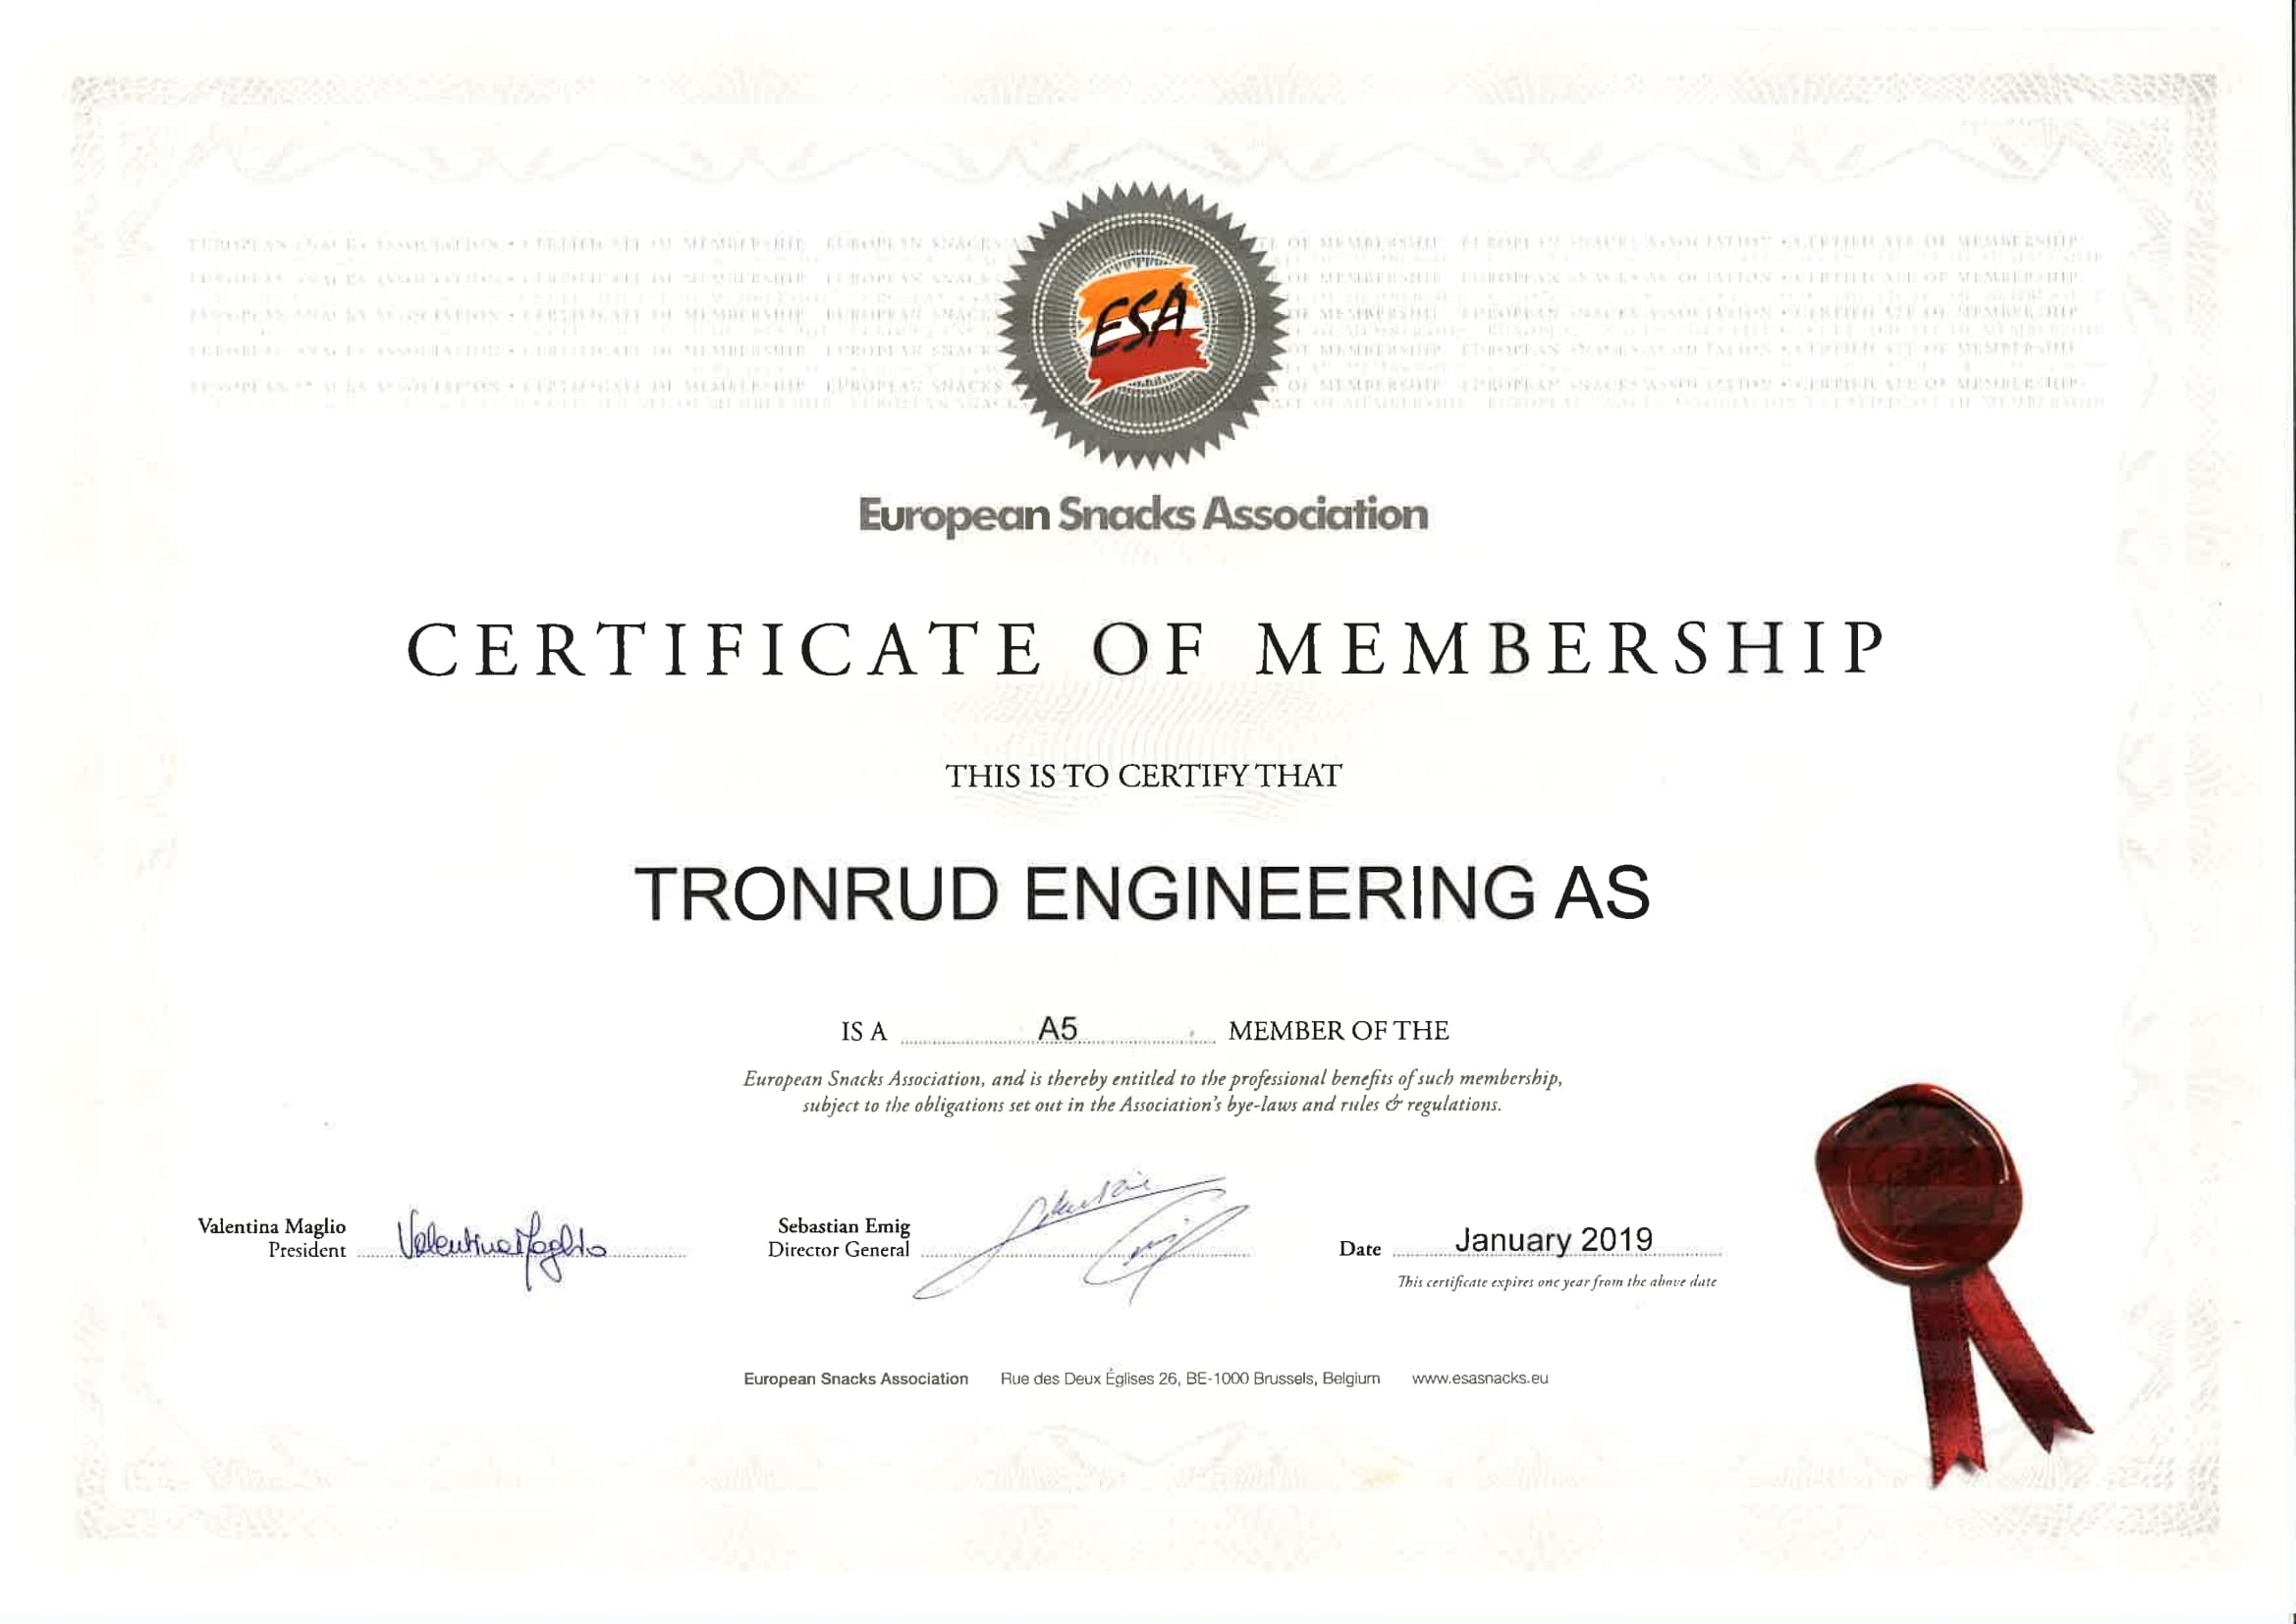 About - Tronrud Engineering